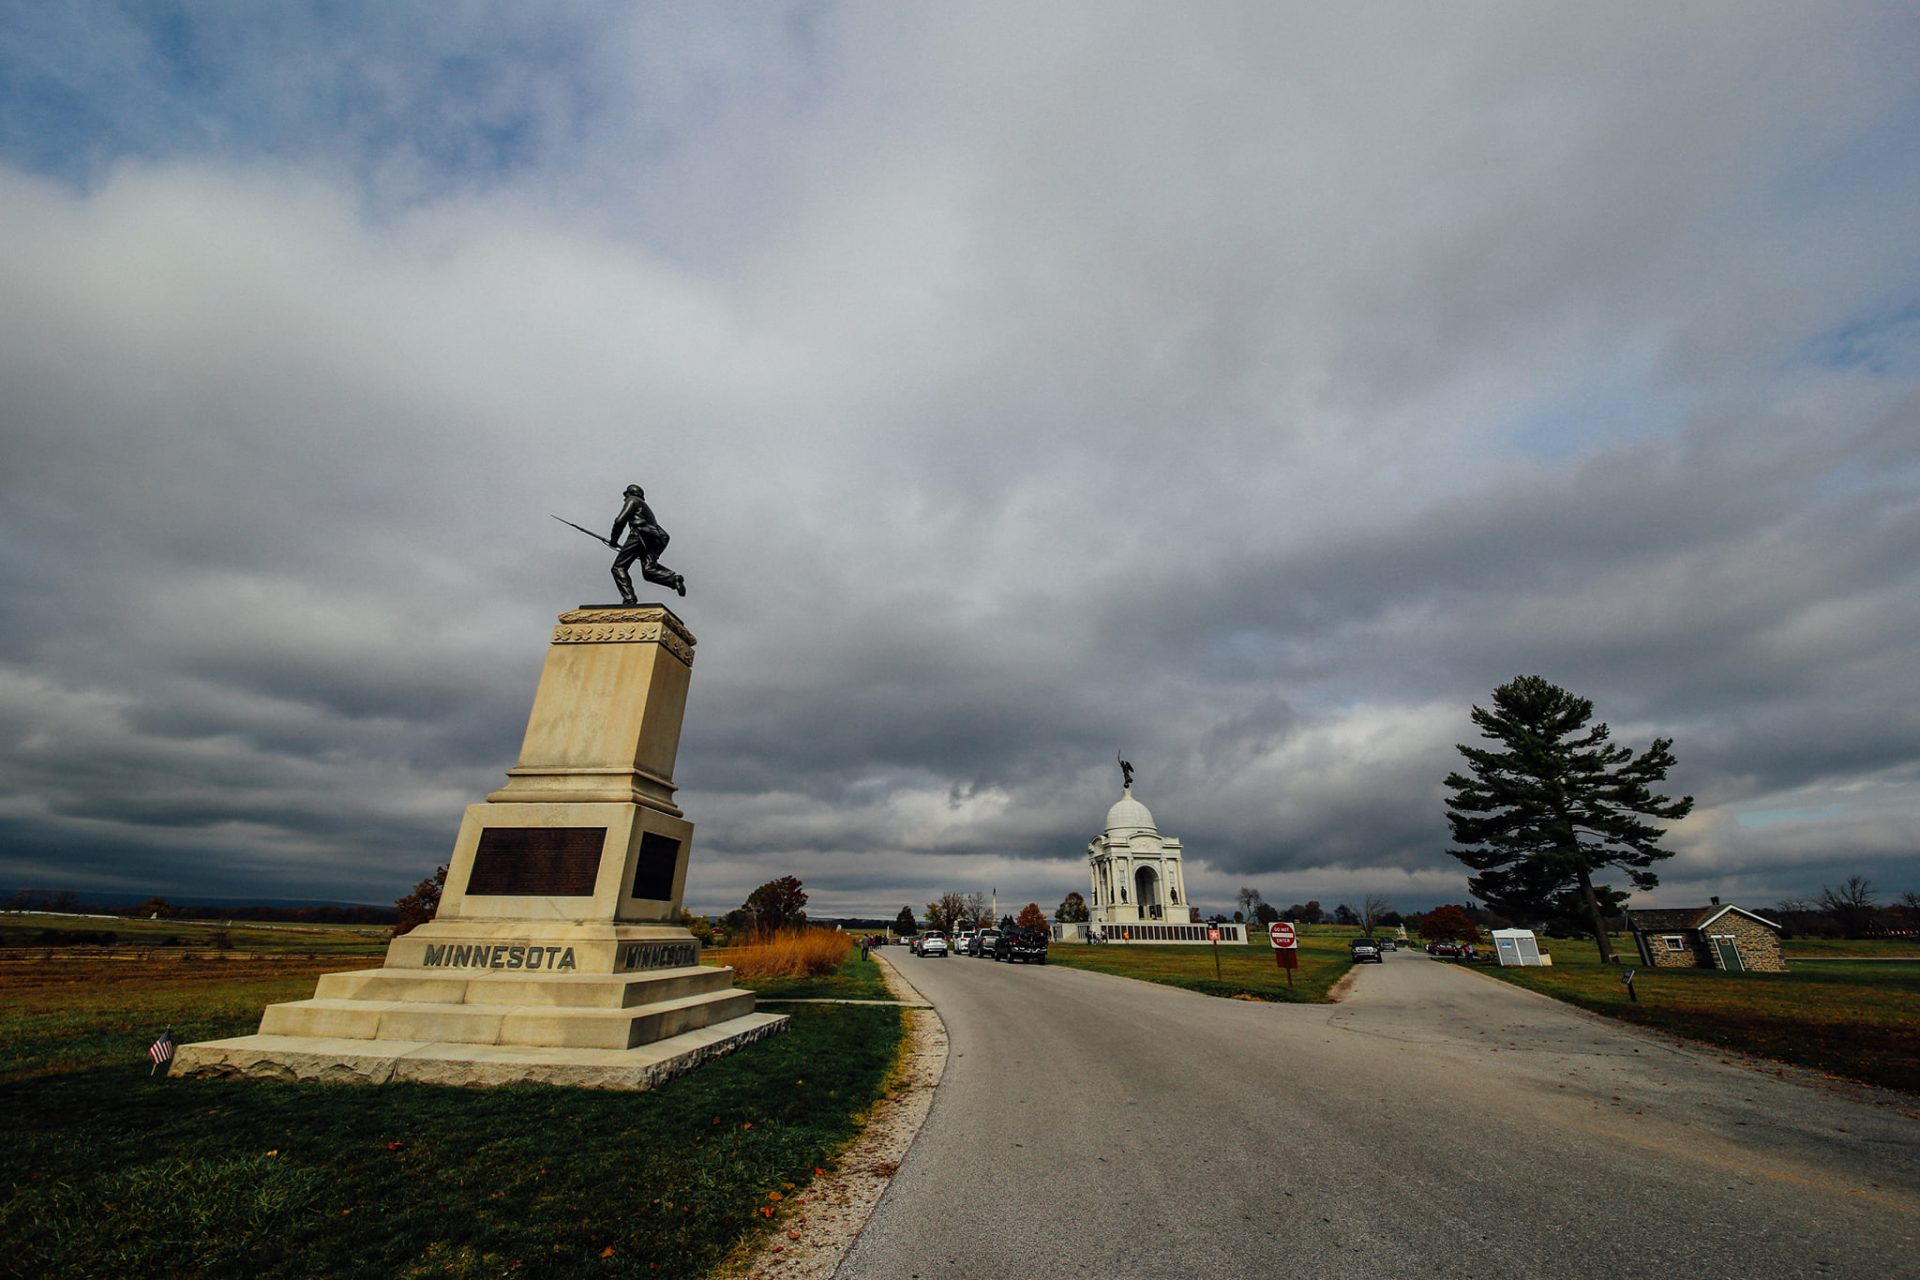 The First Minnesota Monument at the Gettysburg National Military Park.